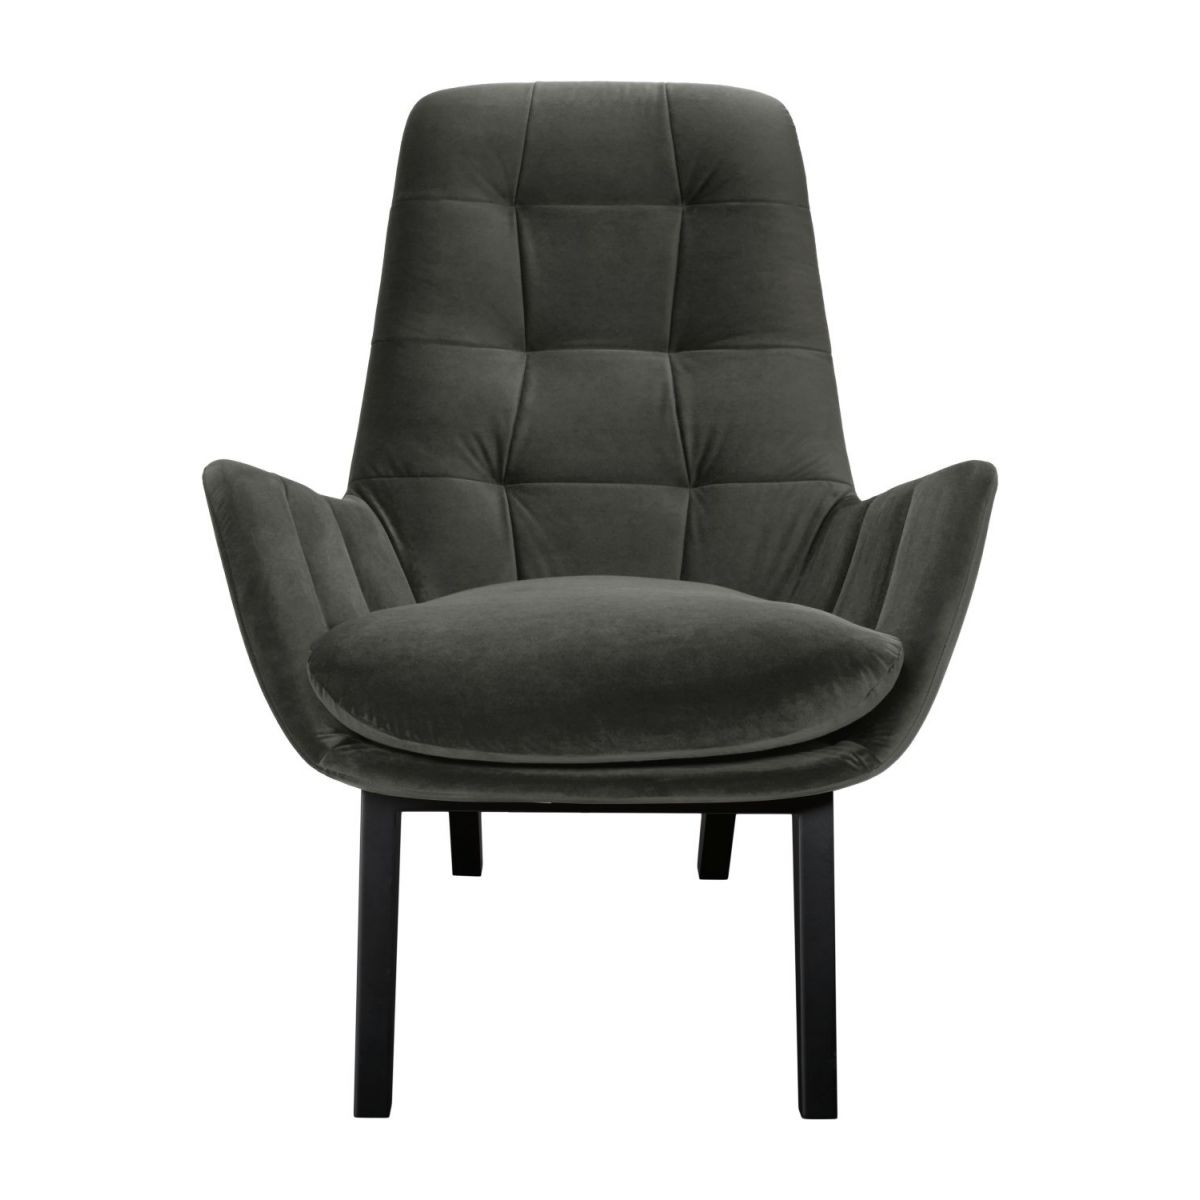 Armchair in Super Velvet fabric, silver grey with dark oak legs n°2